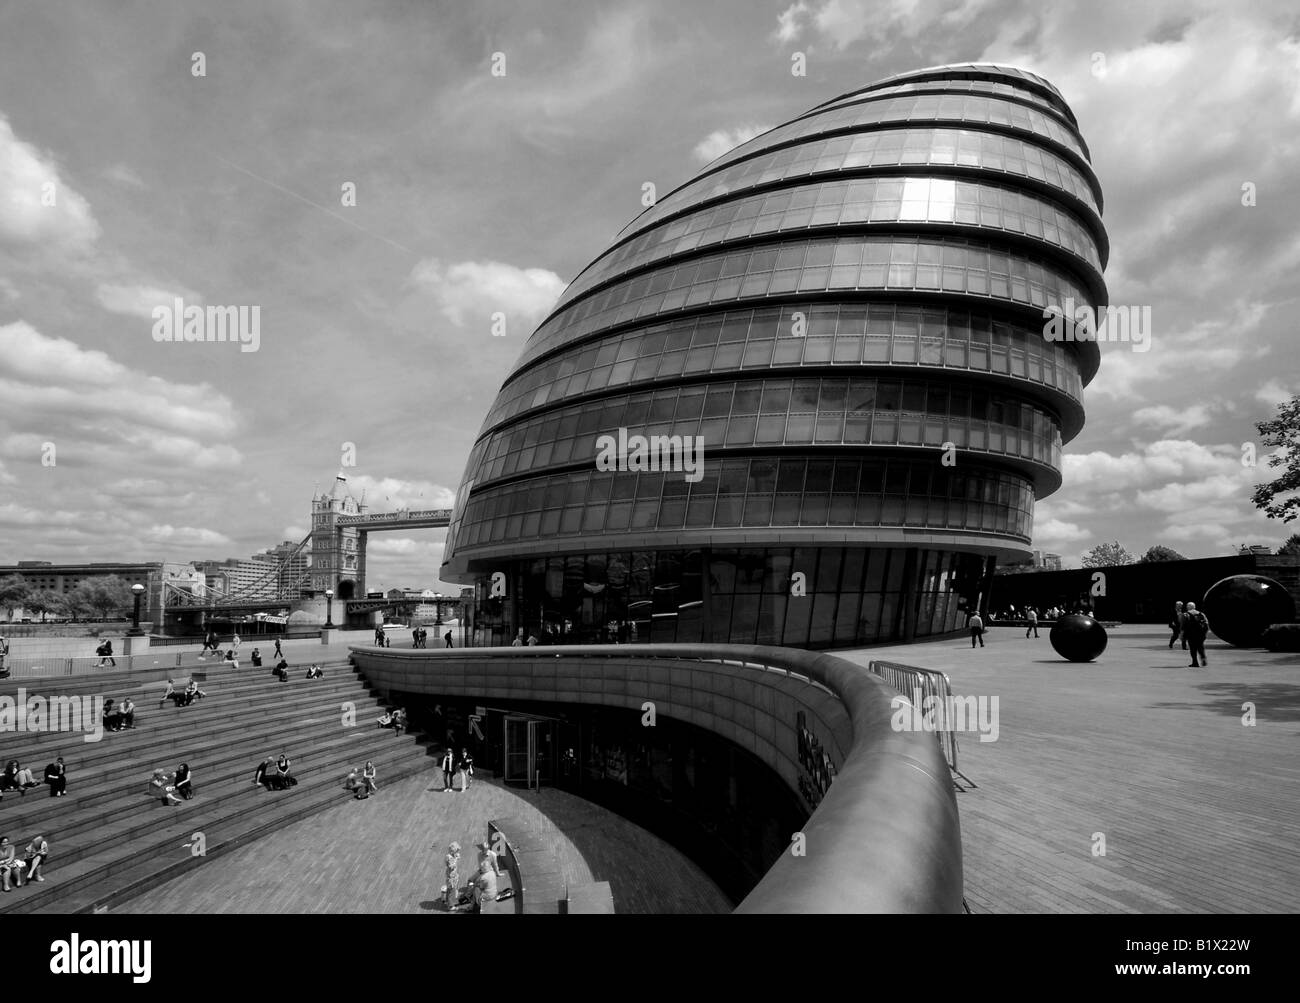 London City Hall in black and white in landscape (portrait version available) - Stock Image